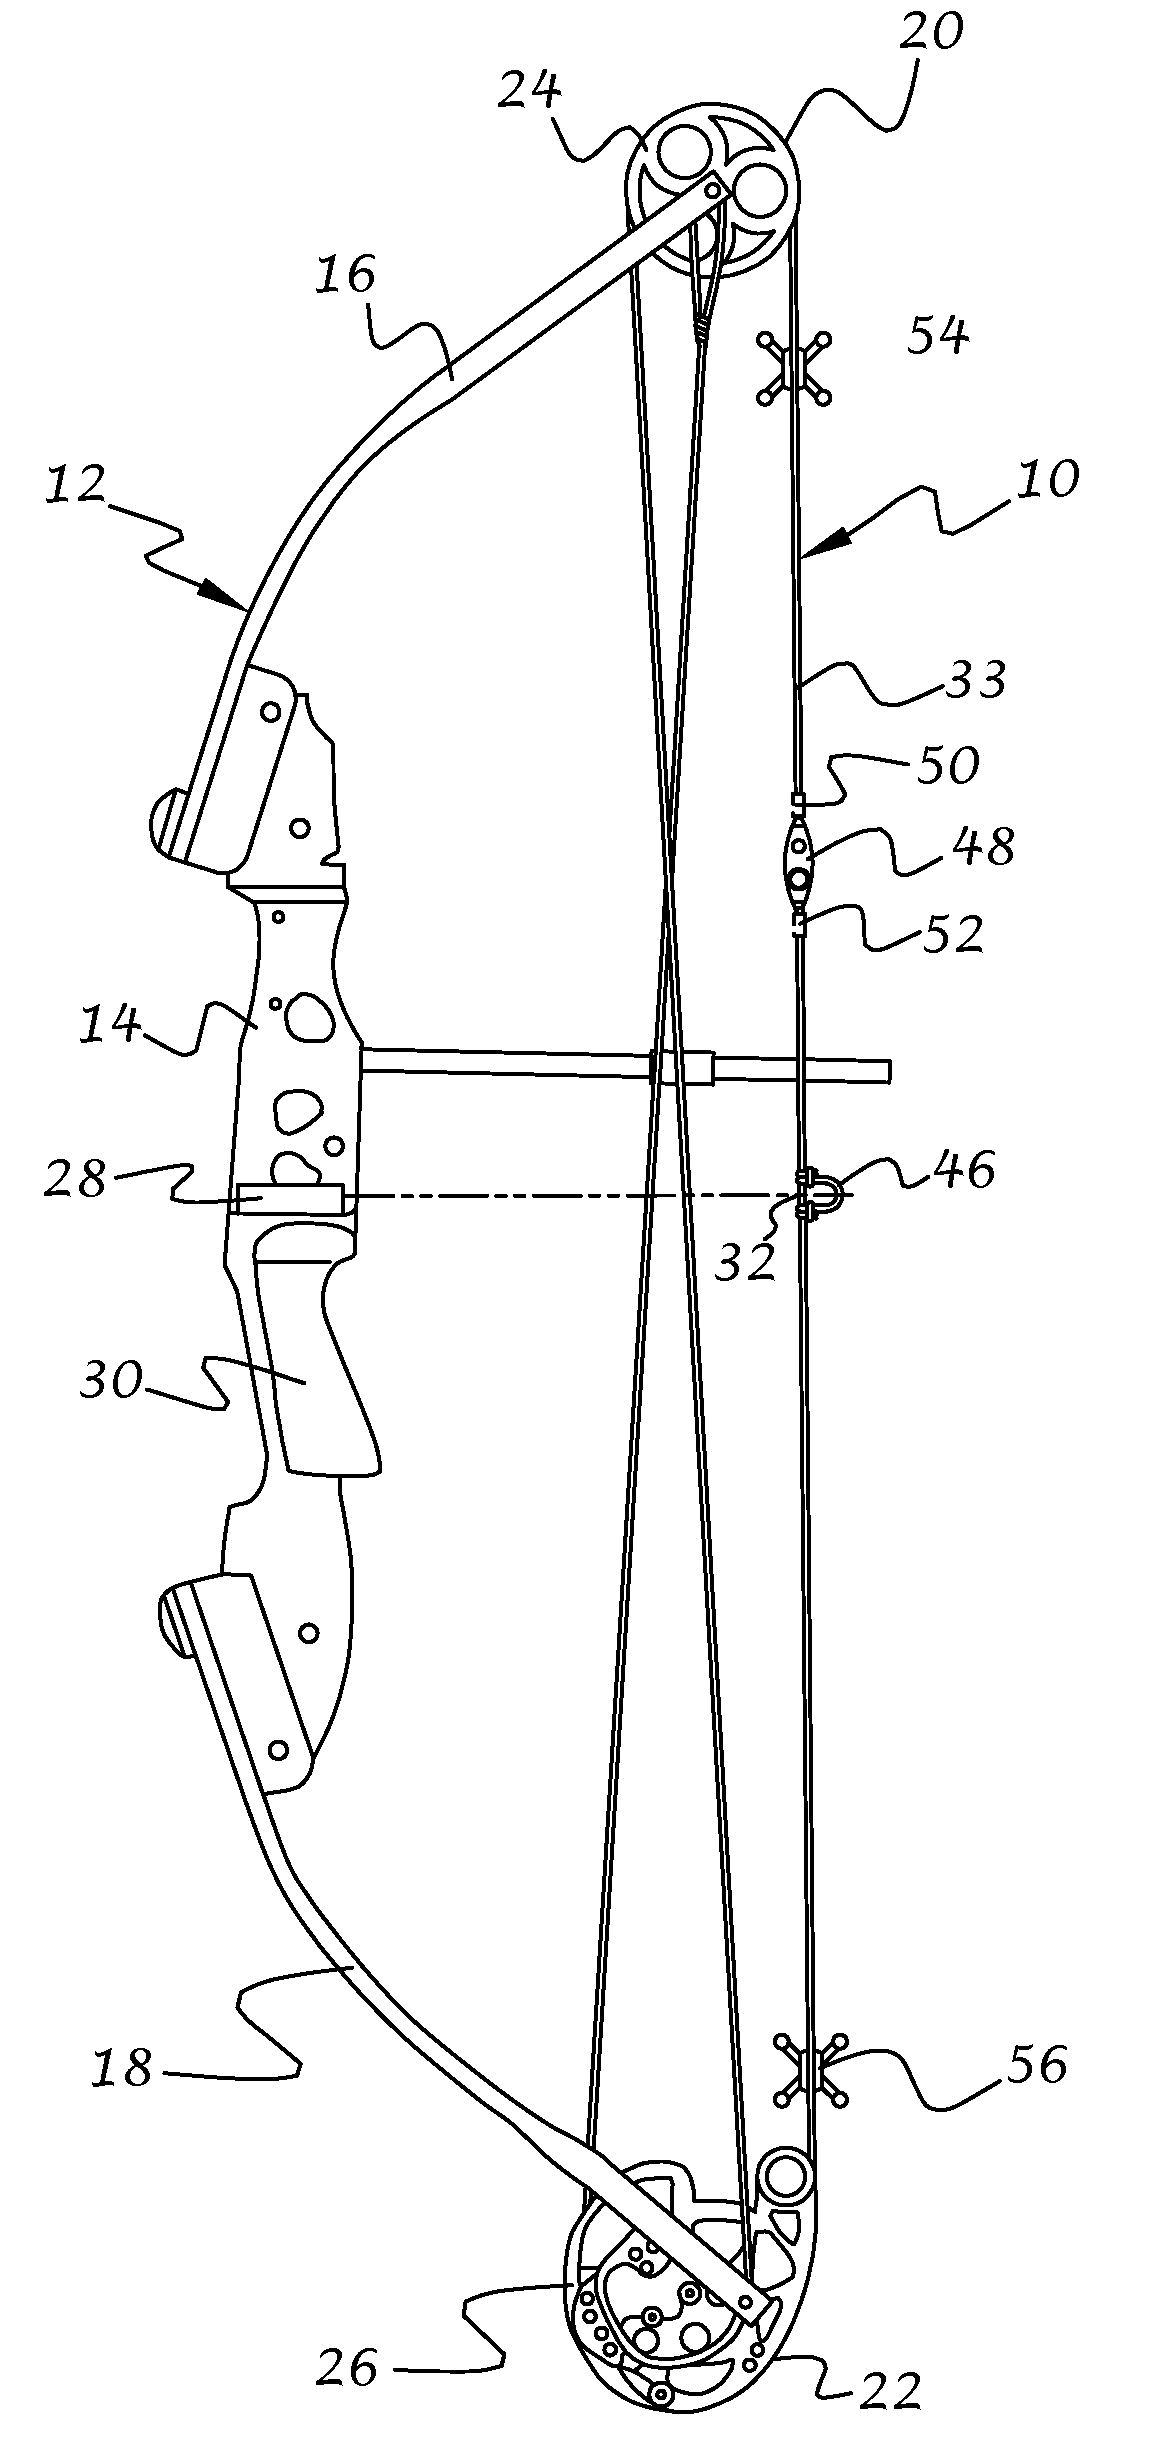 archery bow diagram cb400 hawk wiring patent us20090165767 string assembly and method of